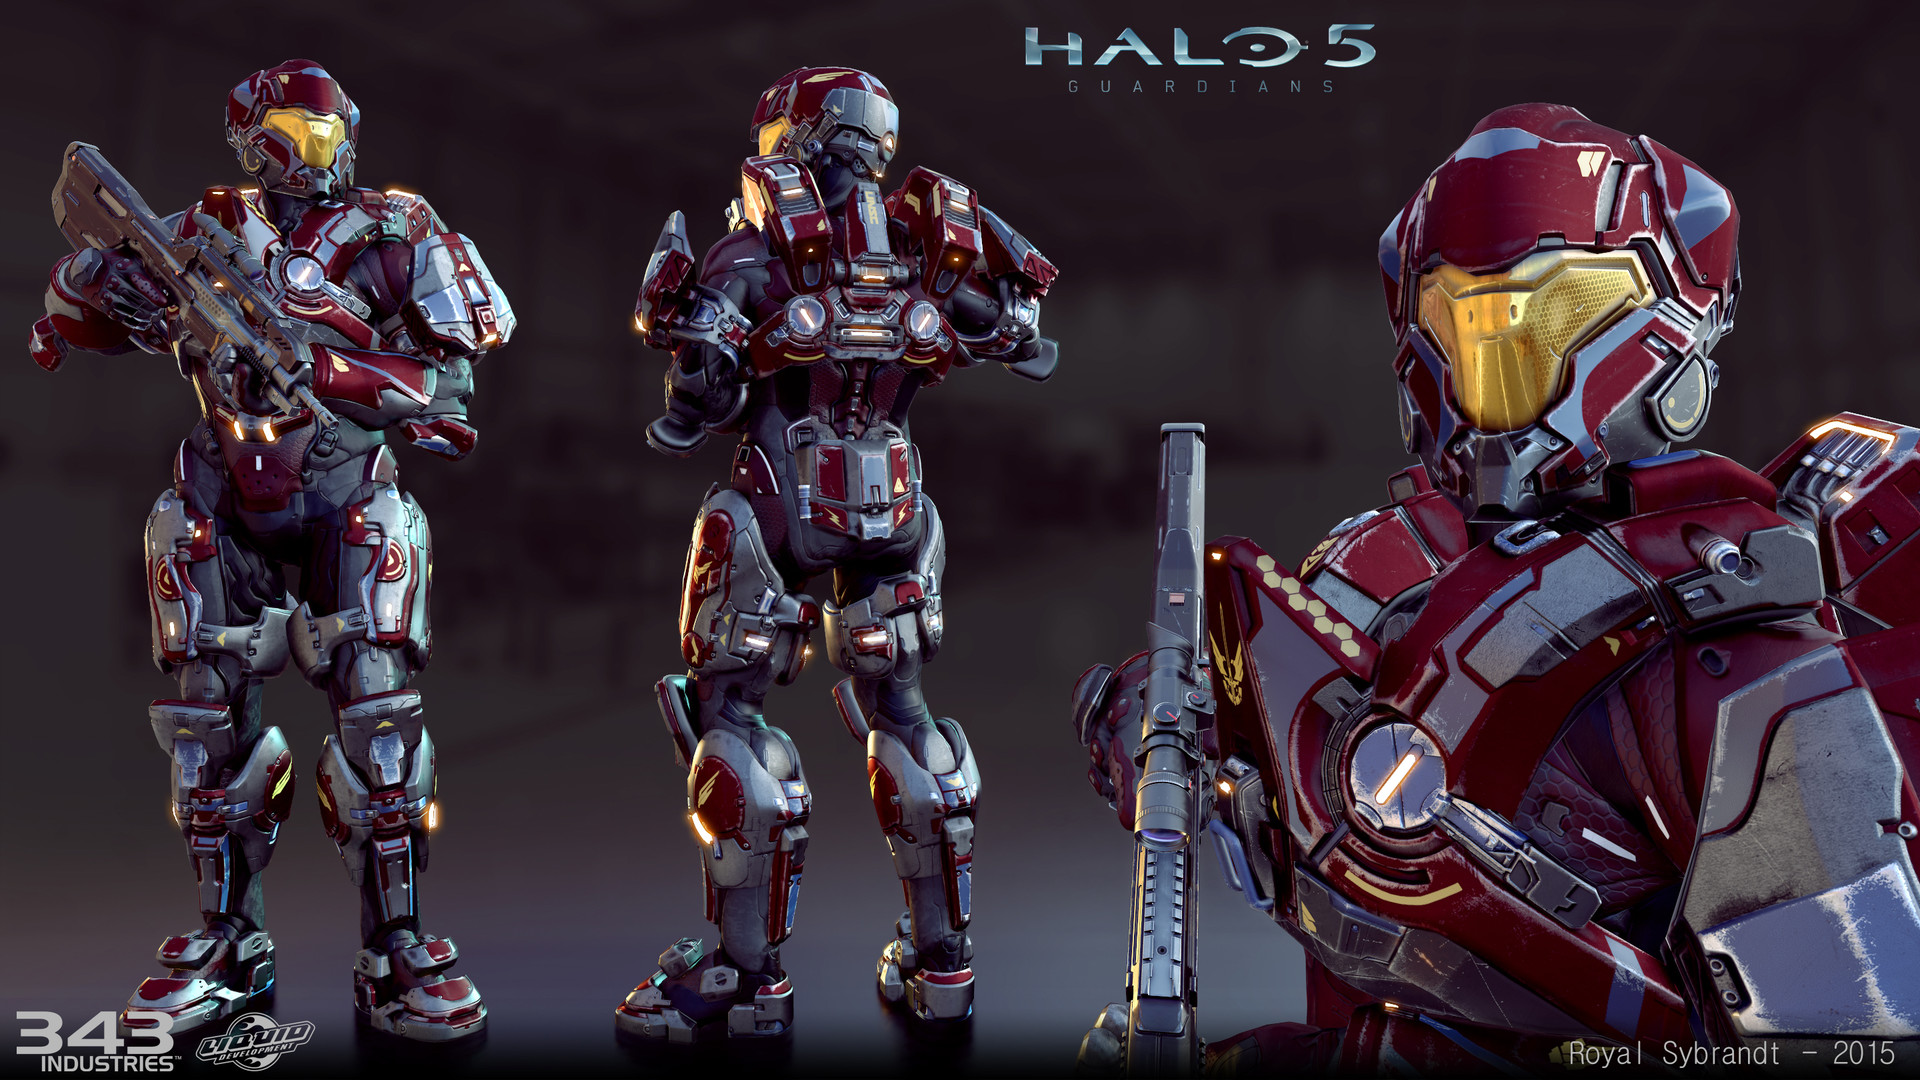 Classic Helmets Compared To Their Redesigns Halo